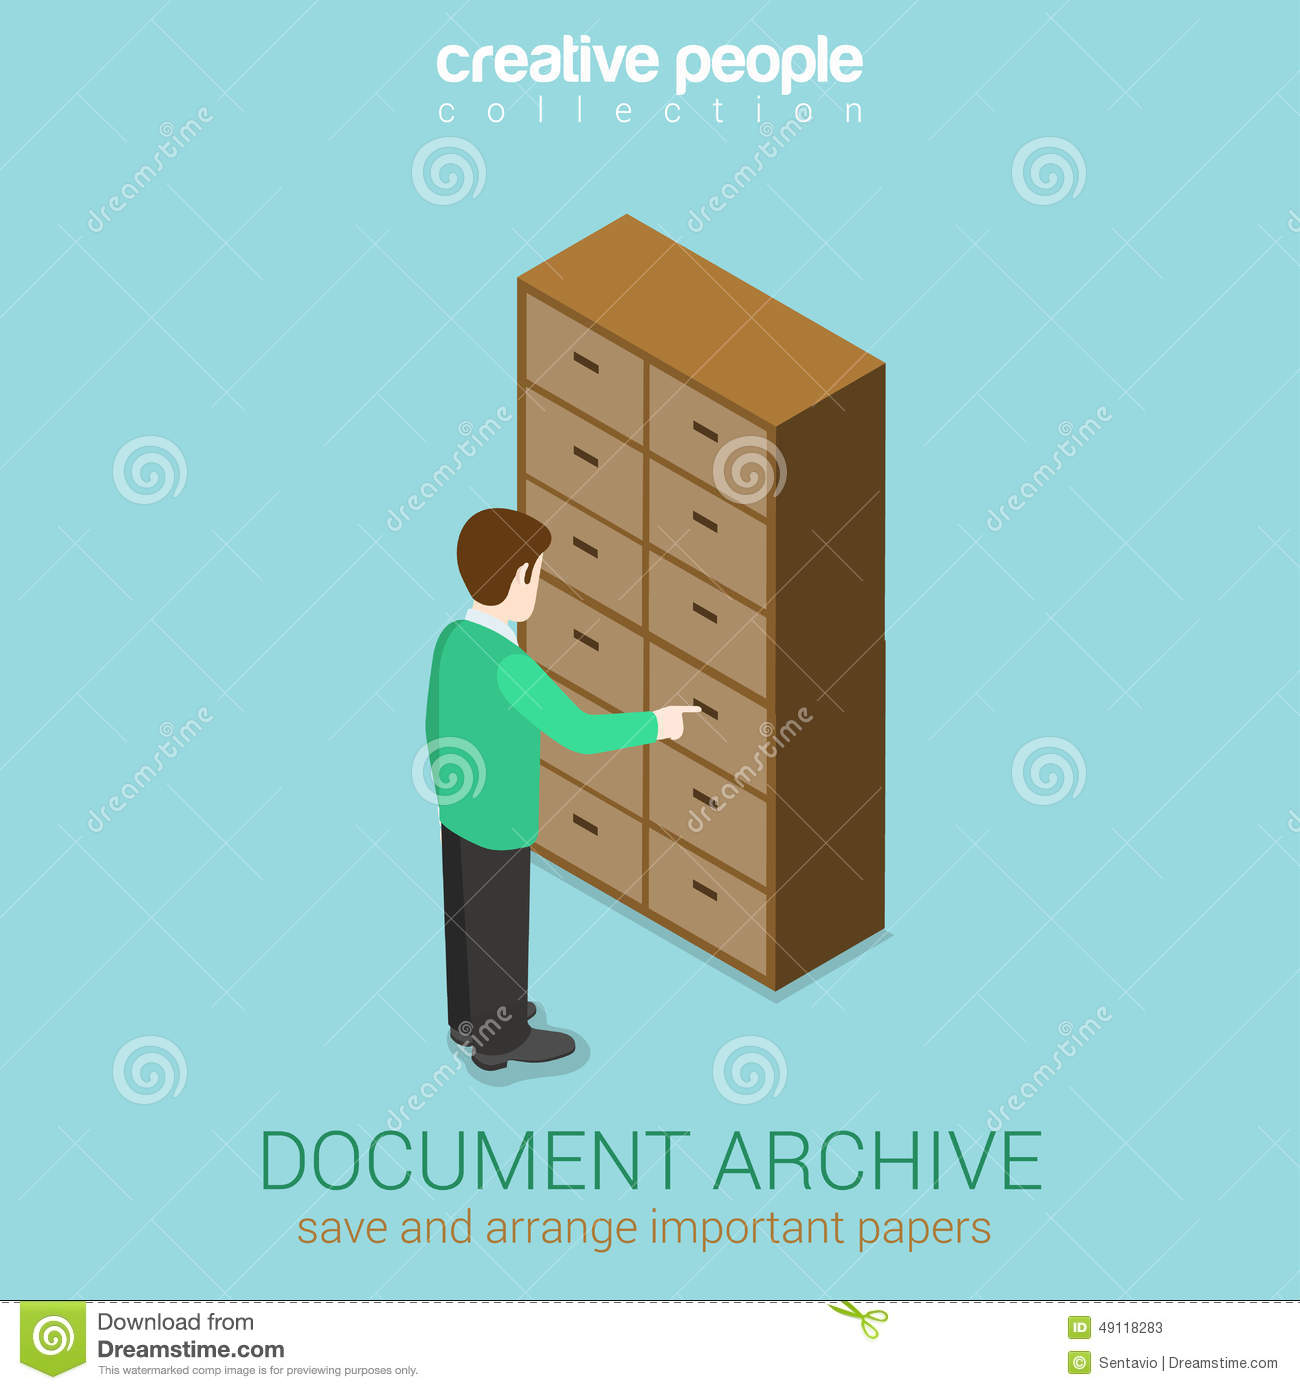 Document Archive Cabinet Interior Flat 3d Web Isometric